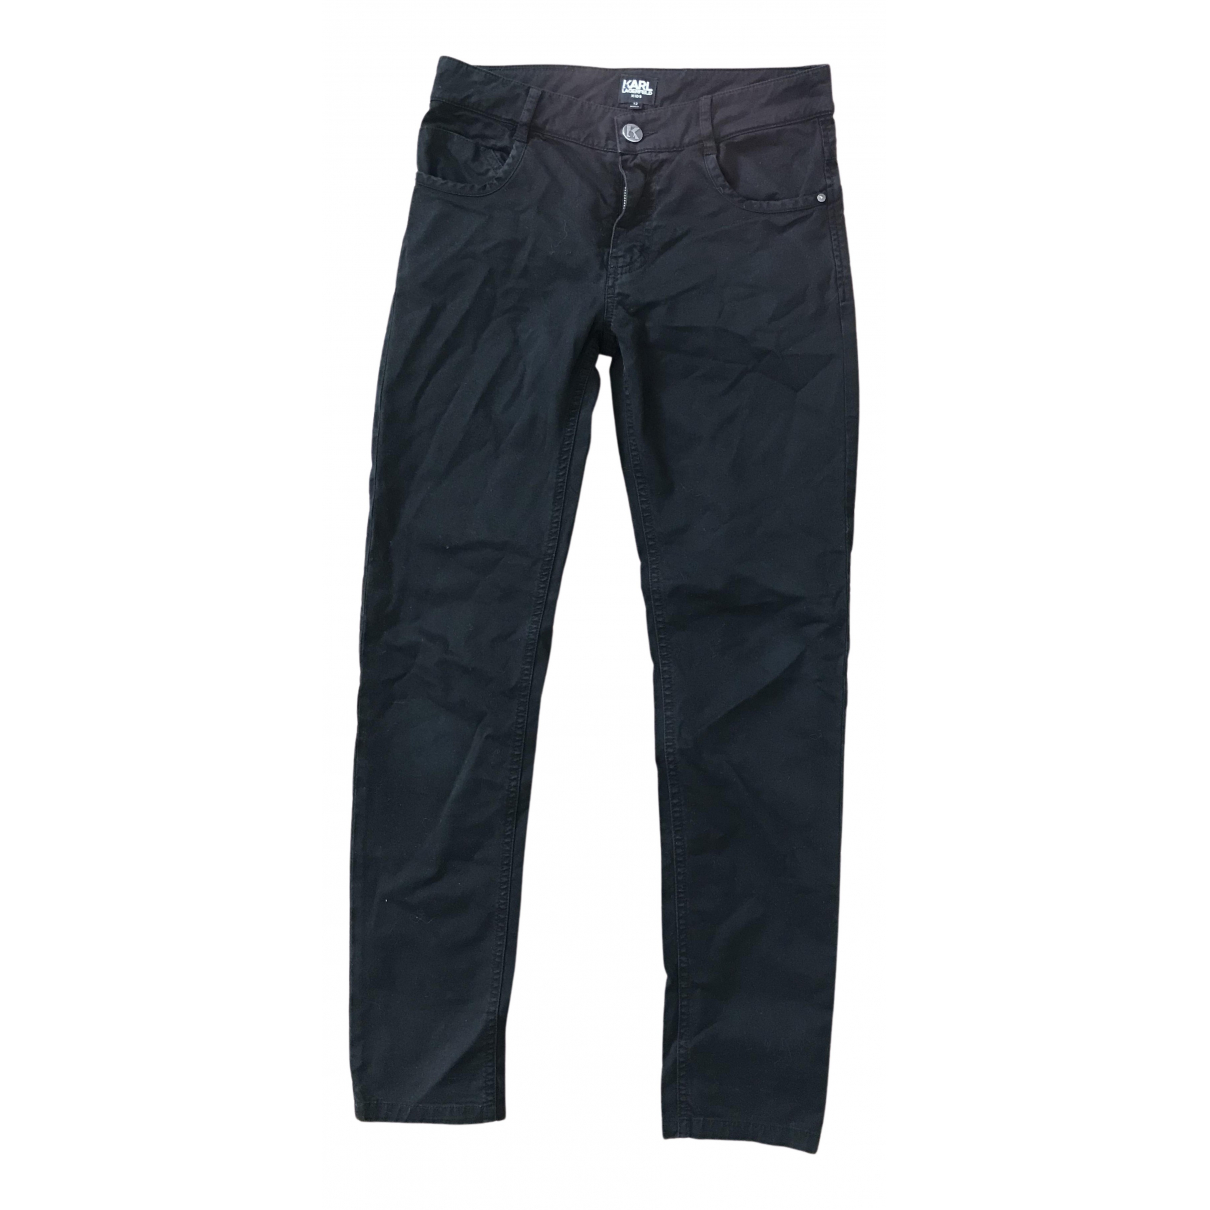 Karl Lagerfeld N Black Cotton Trousers for Kids 12 years - XS FR